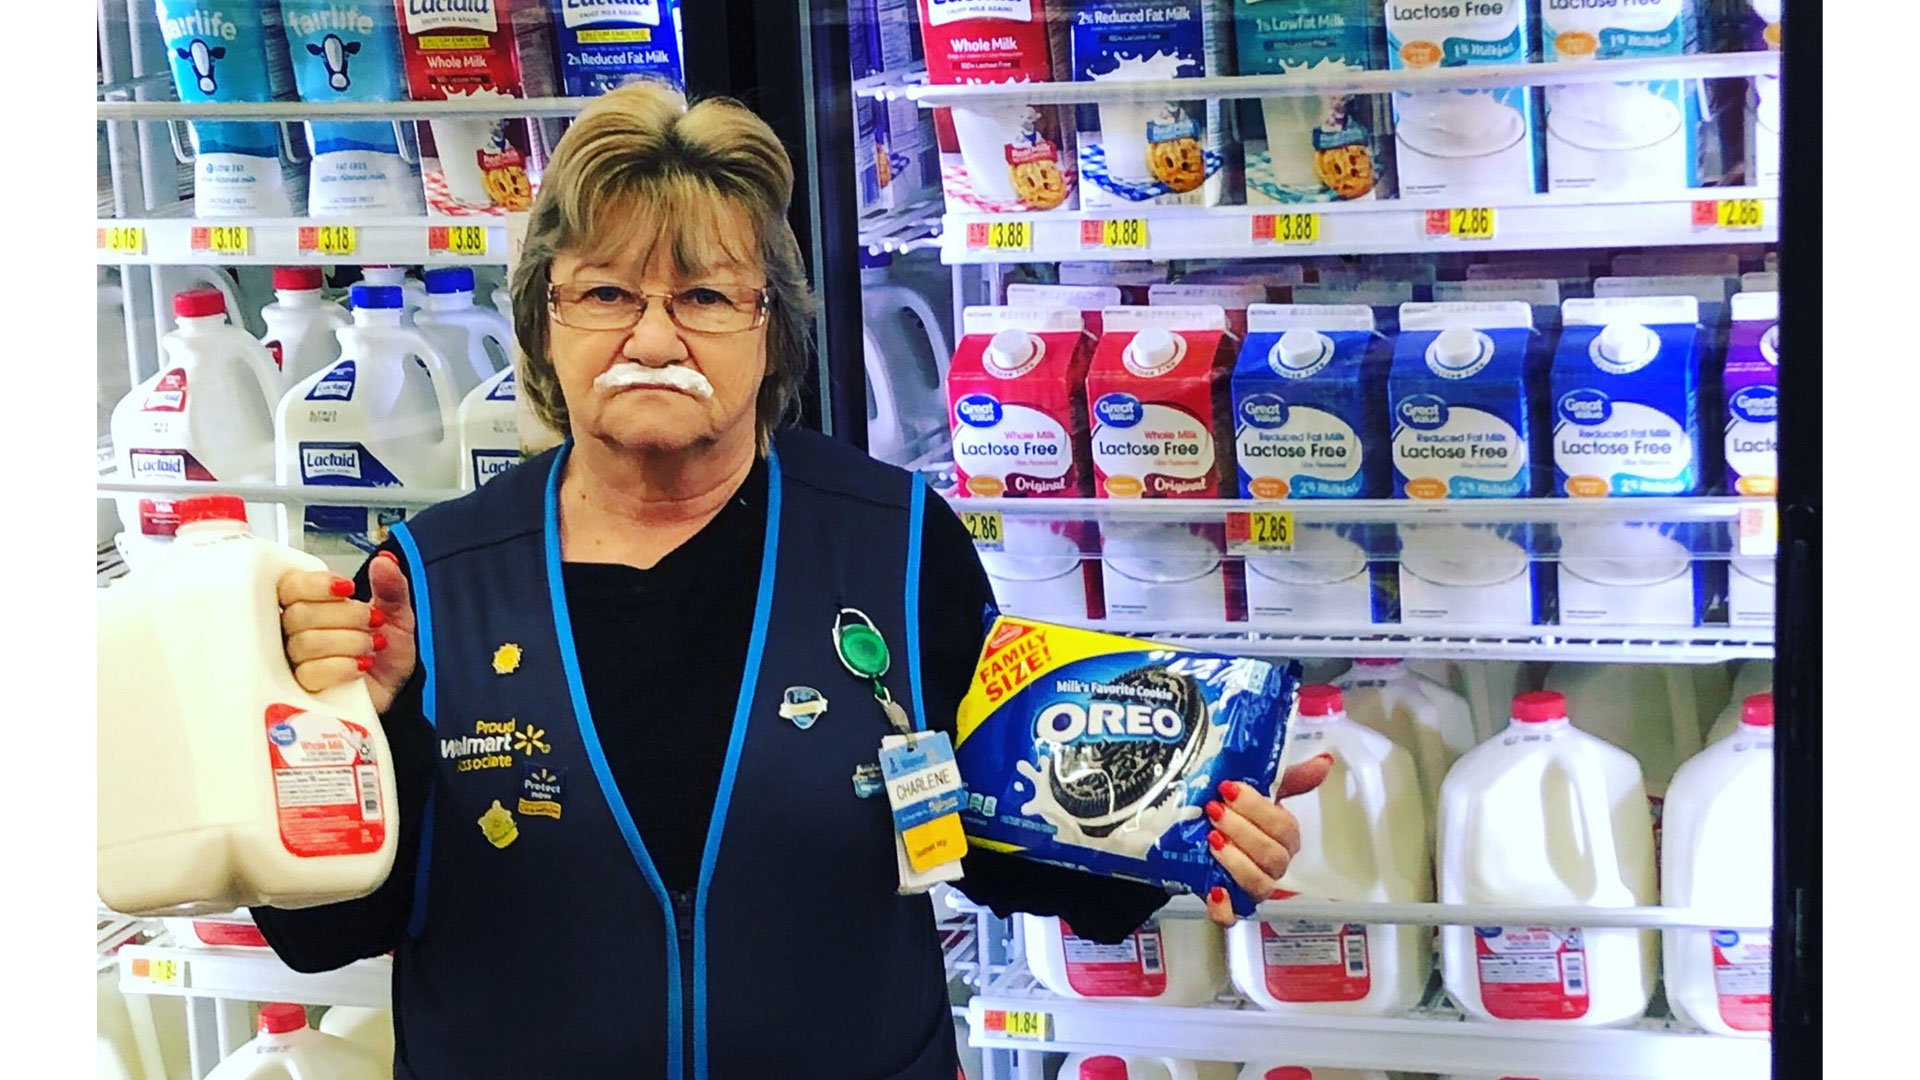 Maryland Walmart Employee and her Deadpan Expression Become Viral Sensation